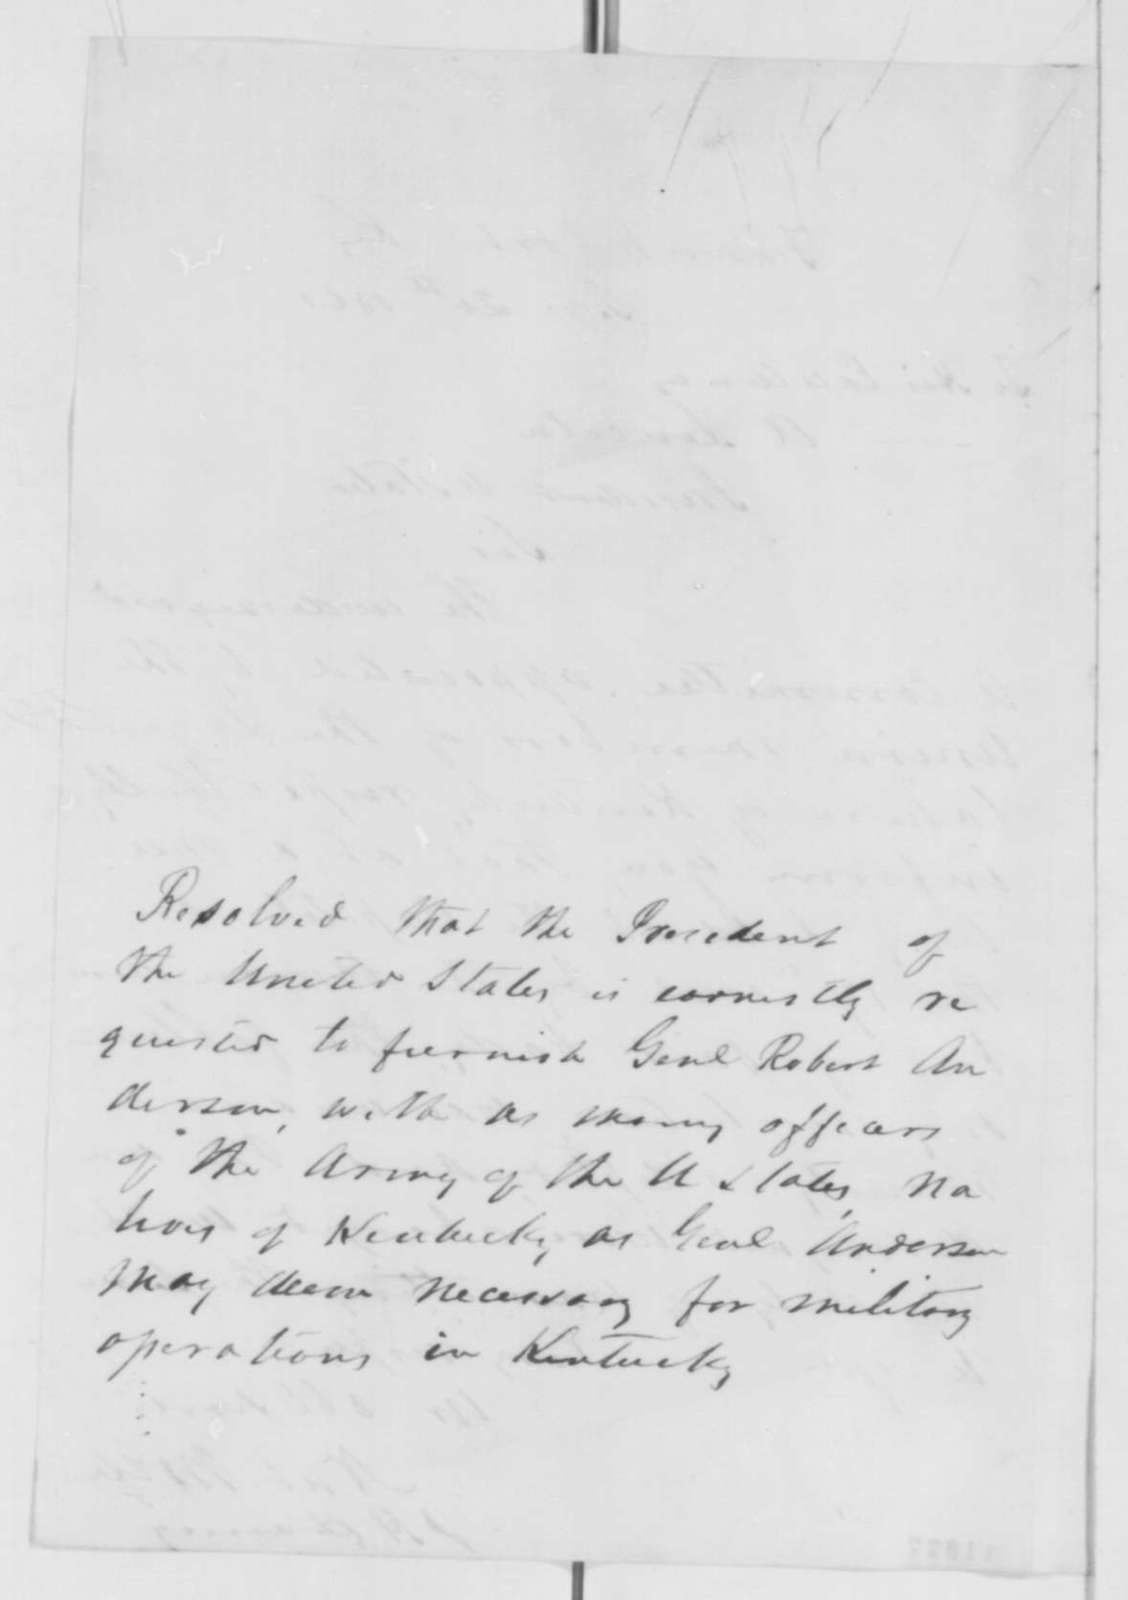 Nathaniel Wolfe and J.H. Harney to Abraham Lincoln, Friday, September 20, 1861  (Resolution from Kentucky legislature requesting army officers)